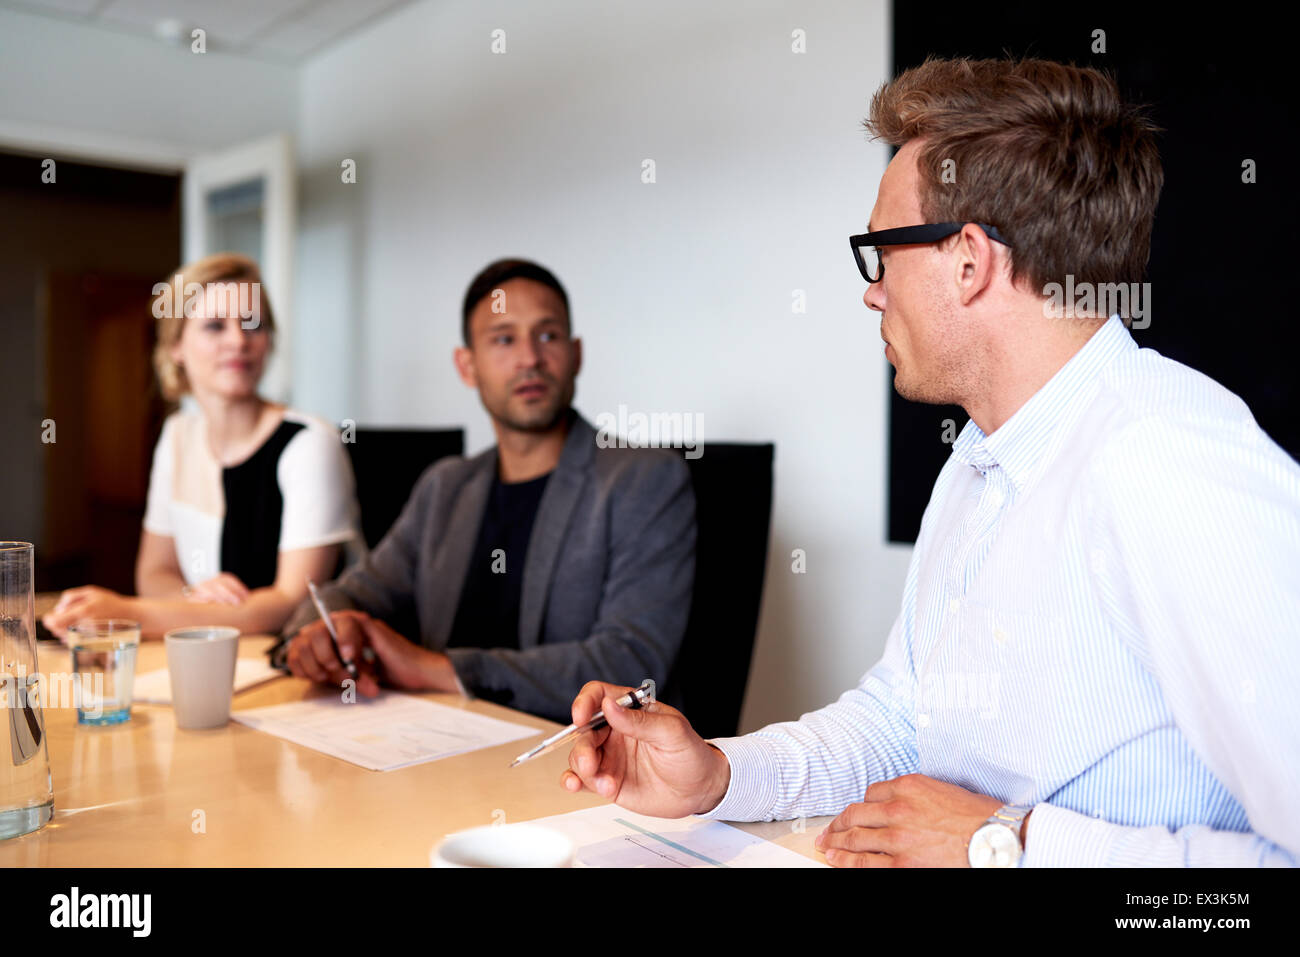 Young executives facing eachother during a meeting in conference room - Stock Image